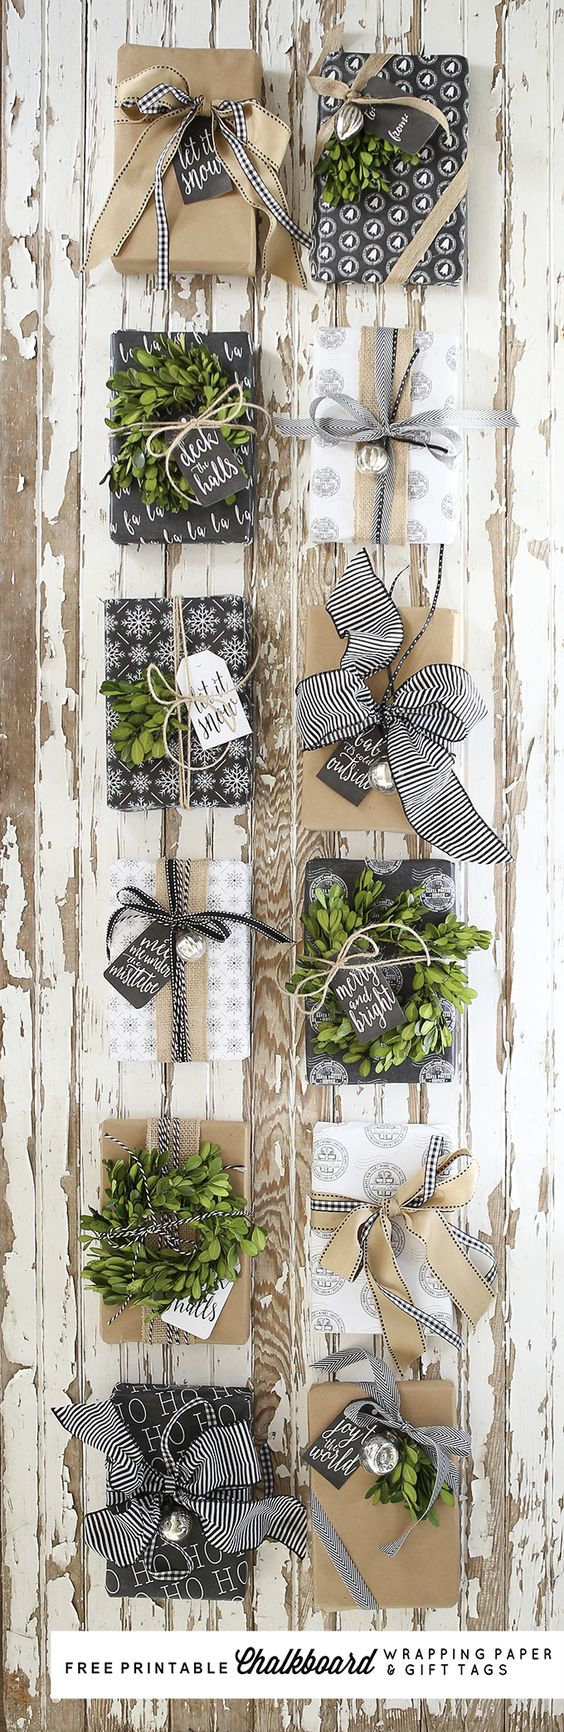 Free Printable Chalkboard Wrapping Paper and Gift Tags